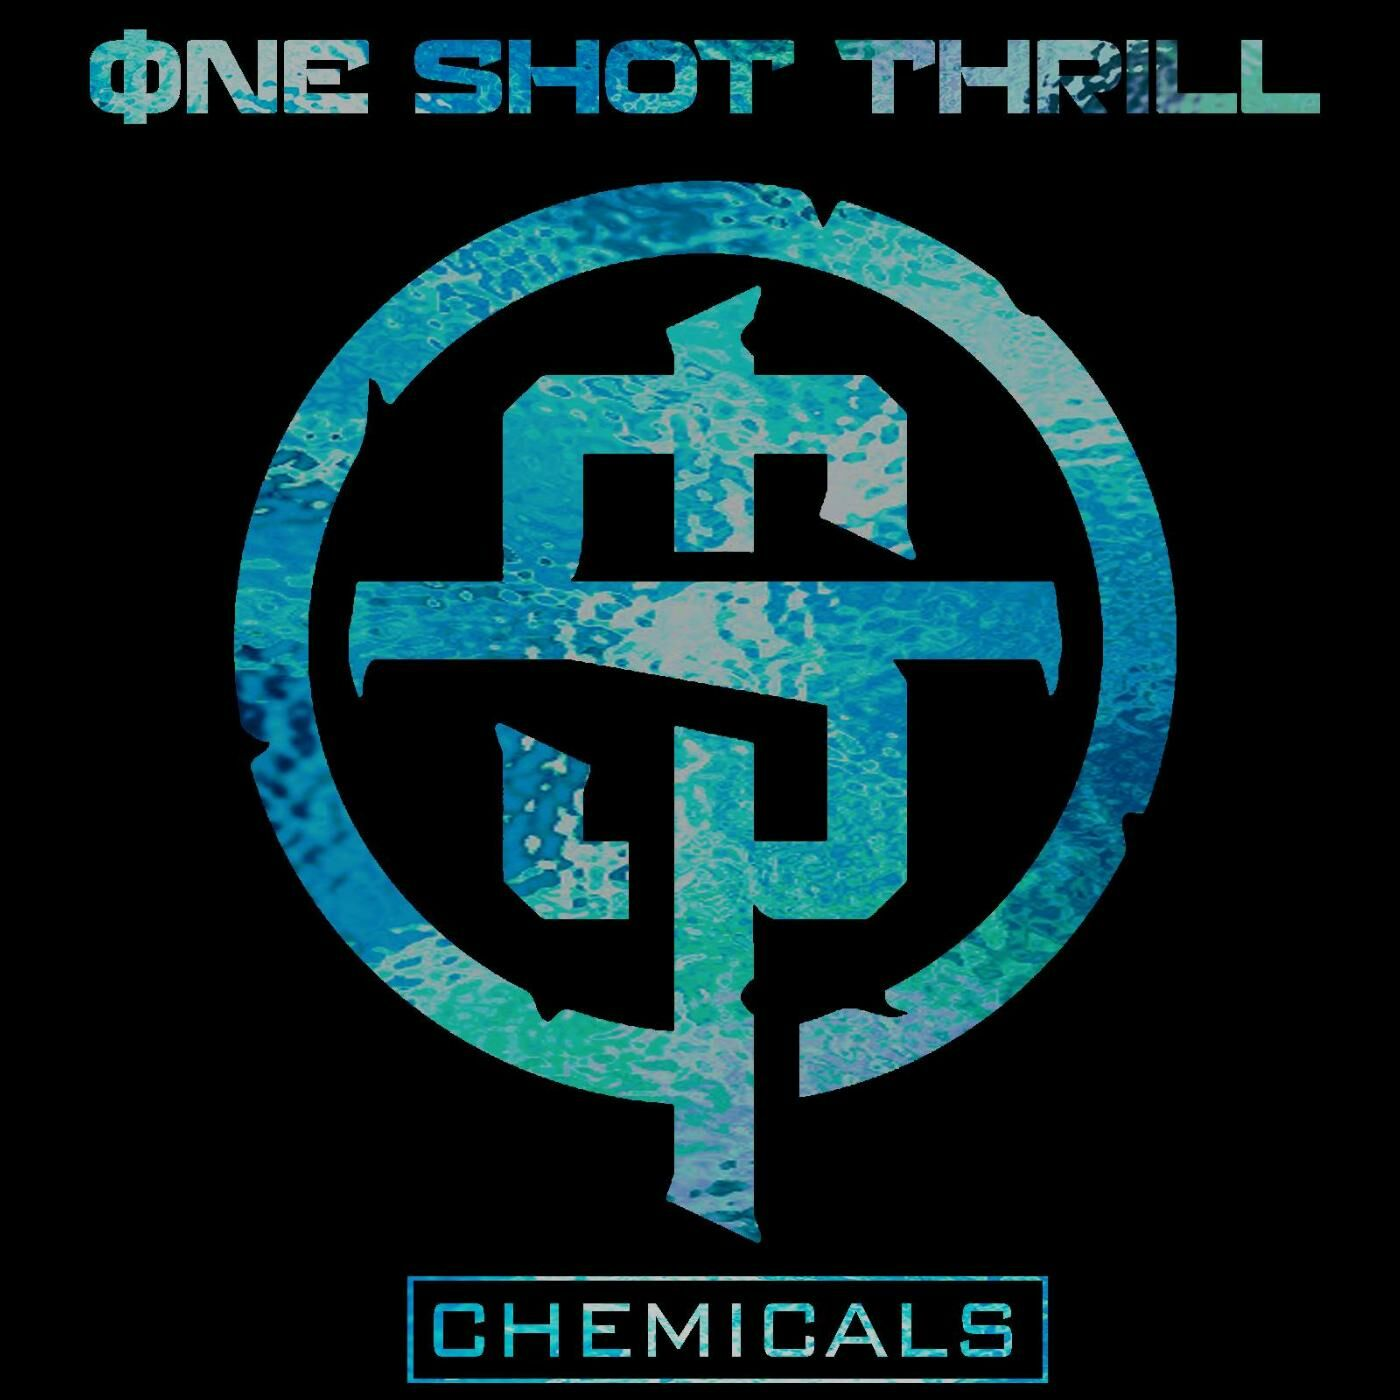 One Shot Thrill - Chemicals [single] (2016)